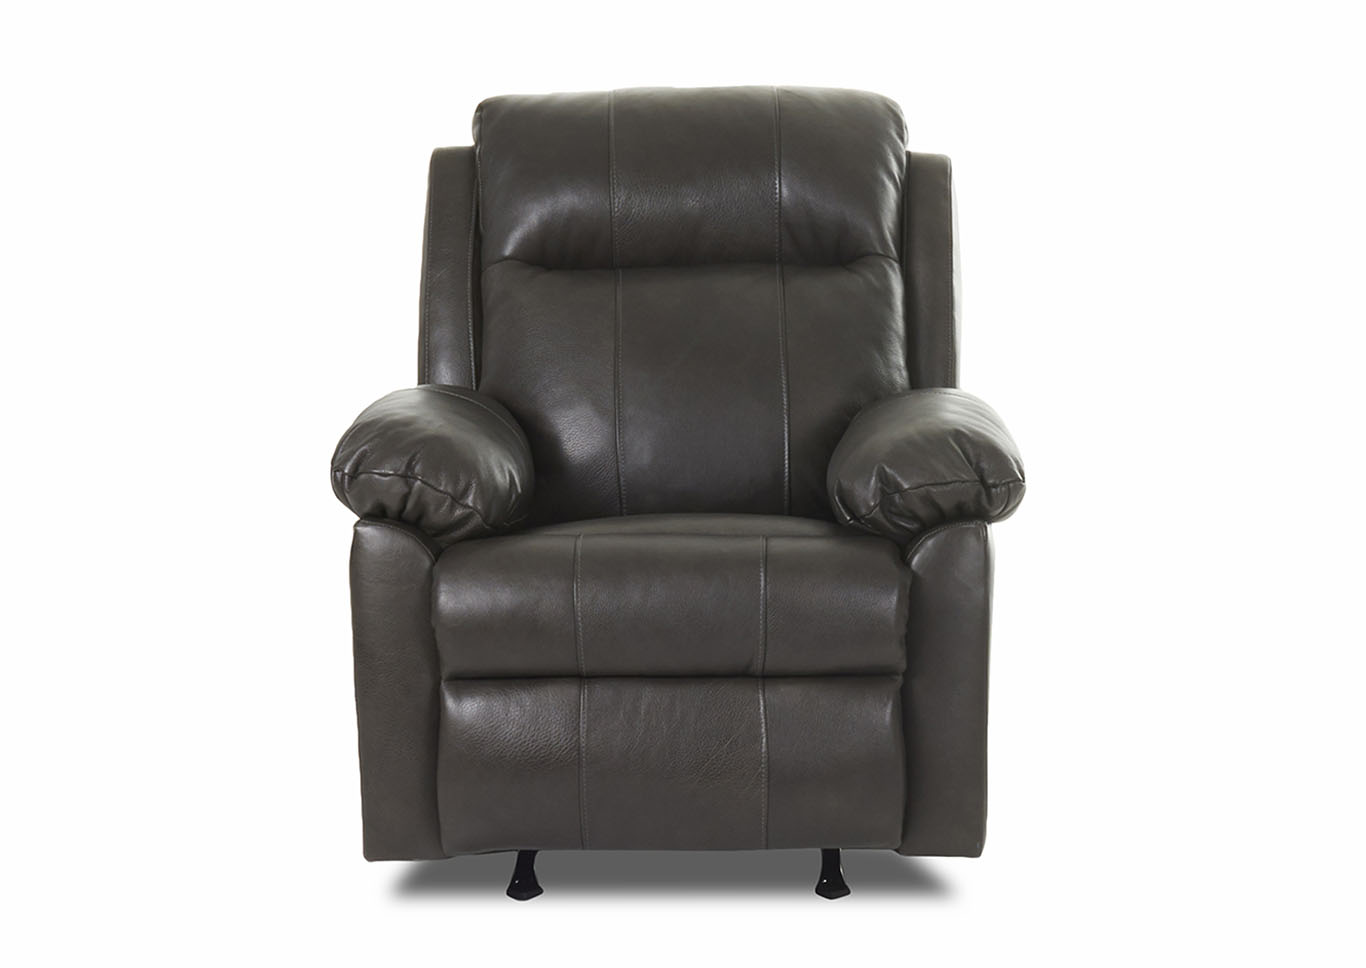 Amari Abilene Steel Gray Power Reclining Leather & Vinyl Chair,Klaussner Home Furnishings